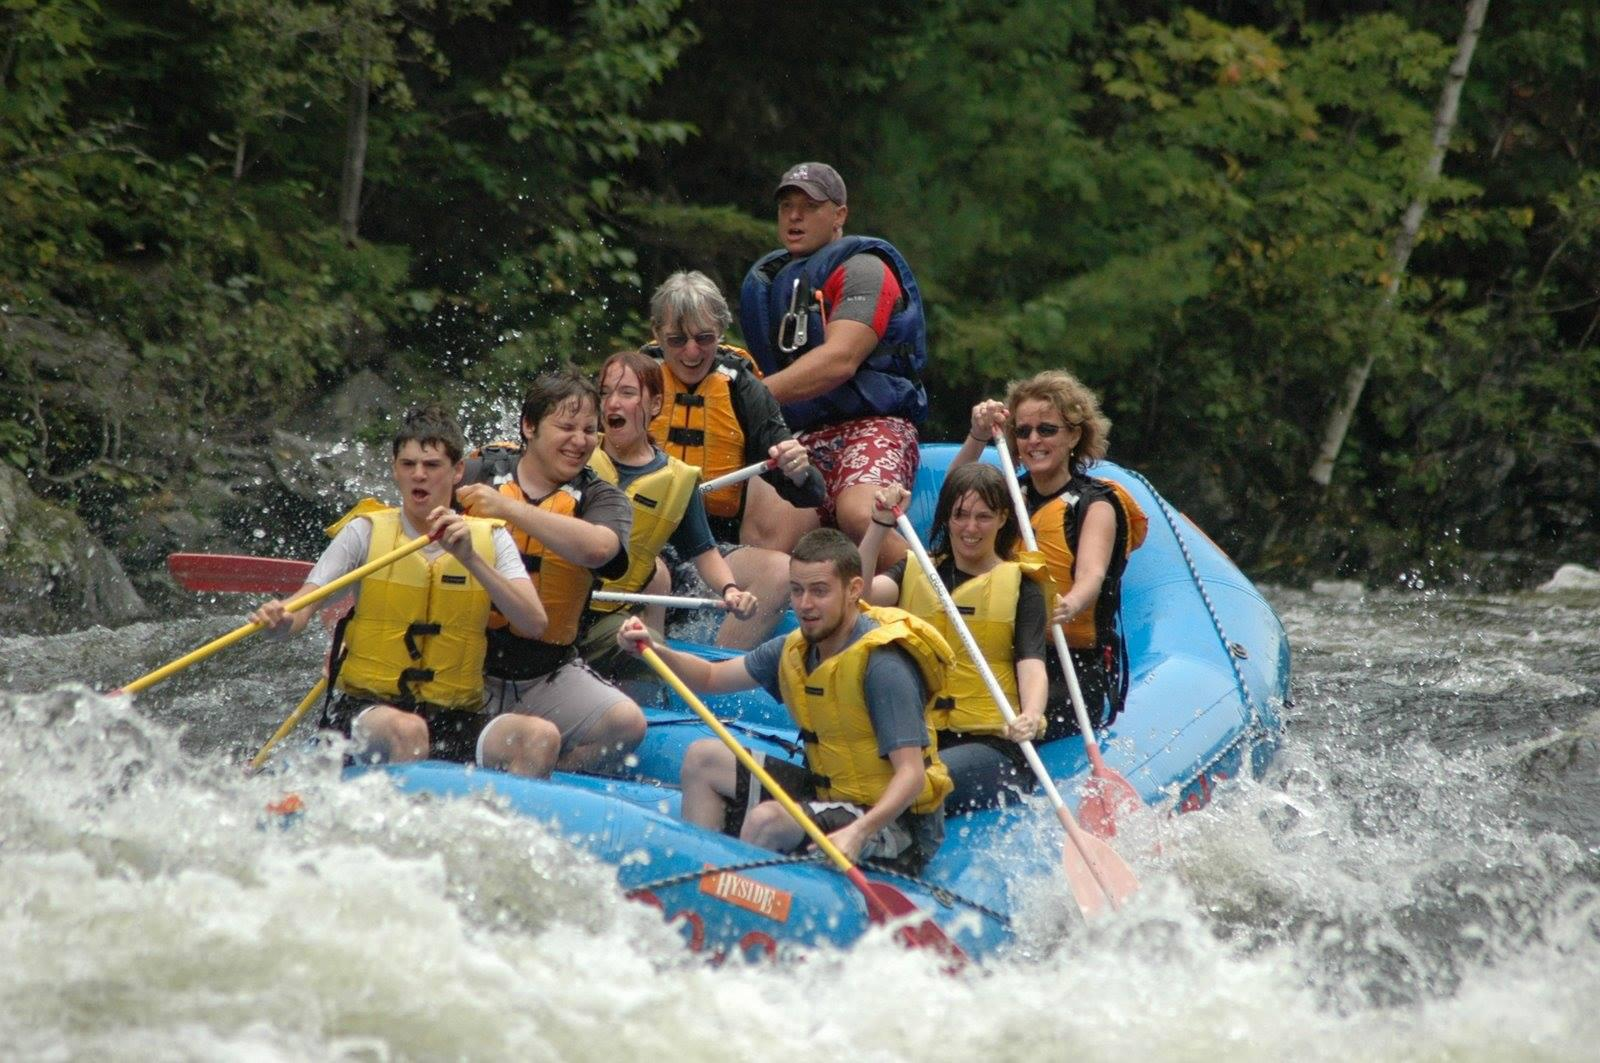 Rafting on the Vermillion River (Mahmoud Ali / Facebook)